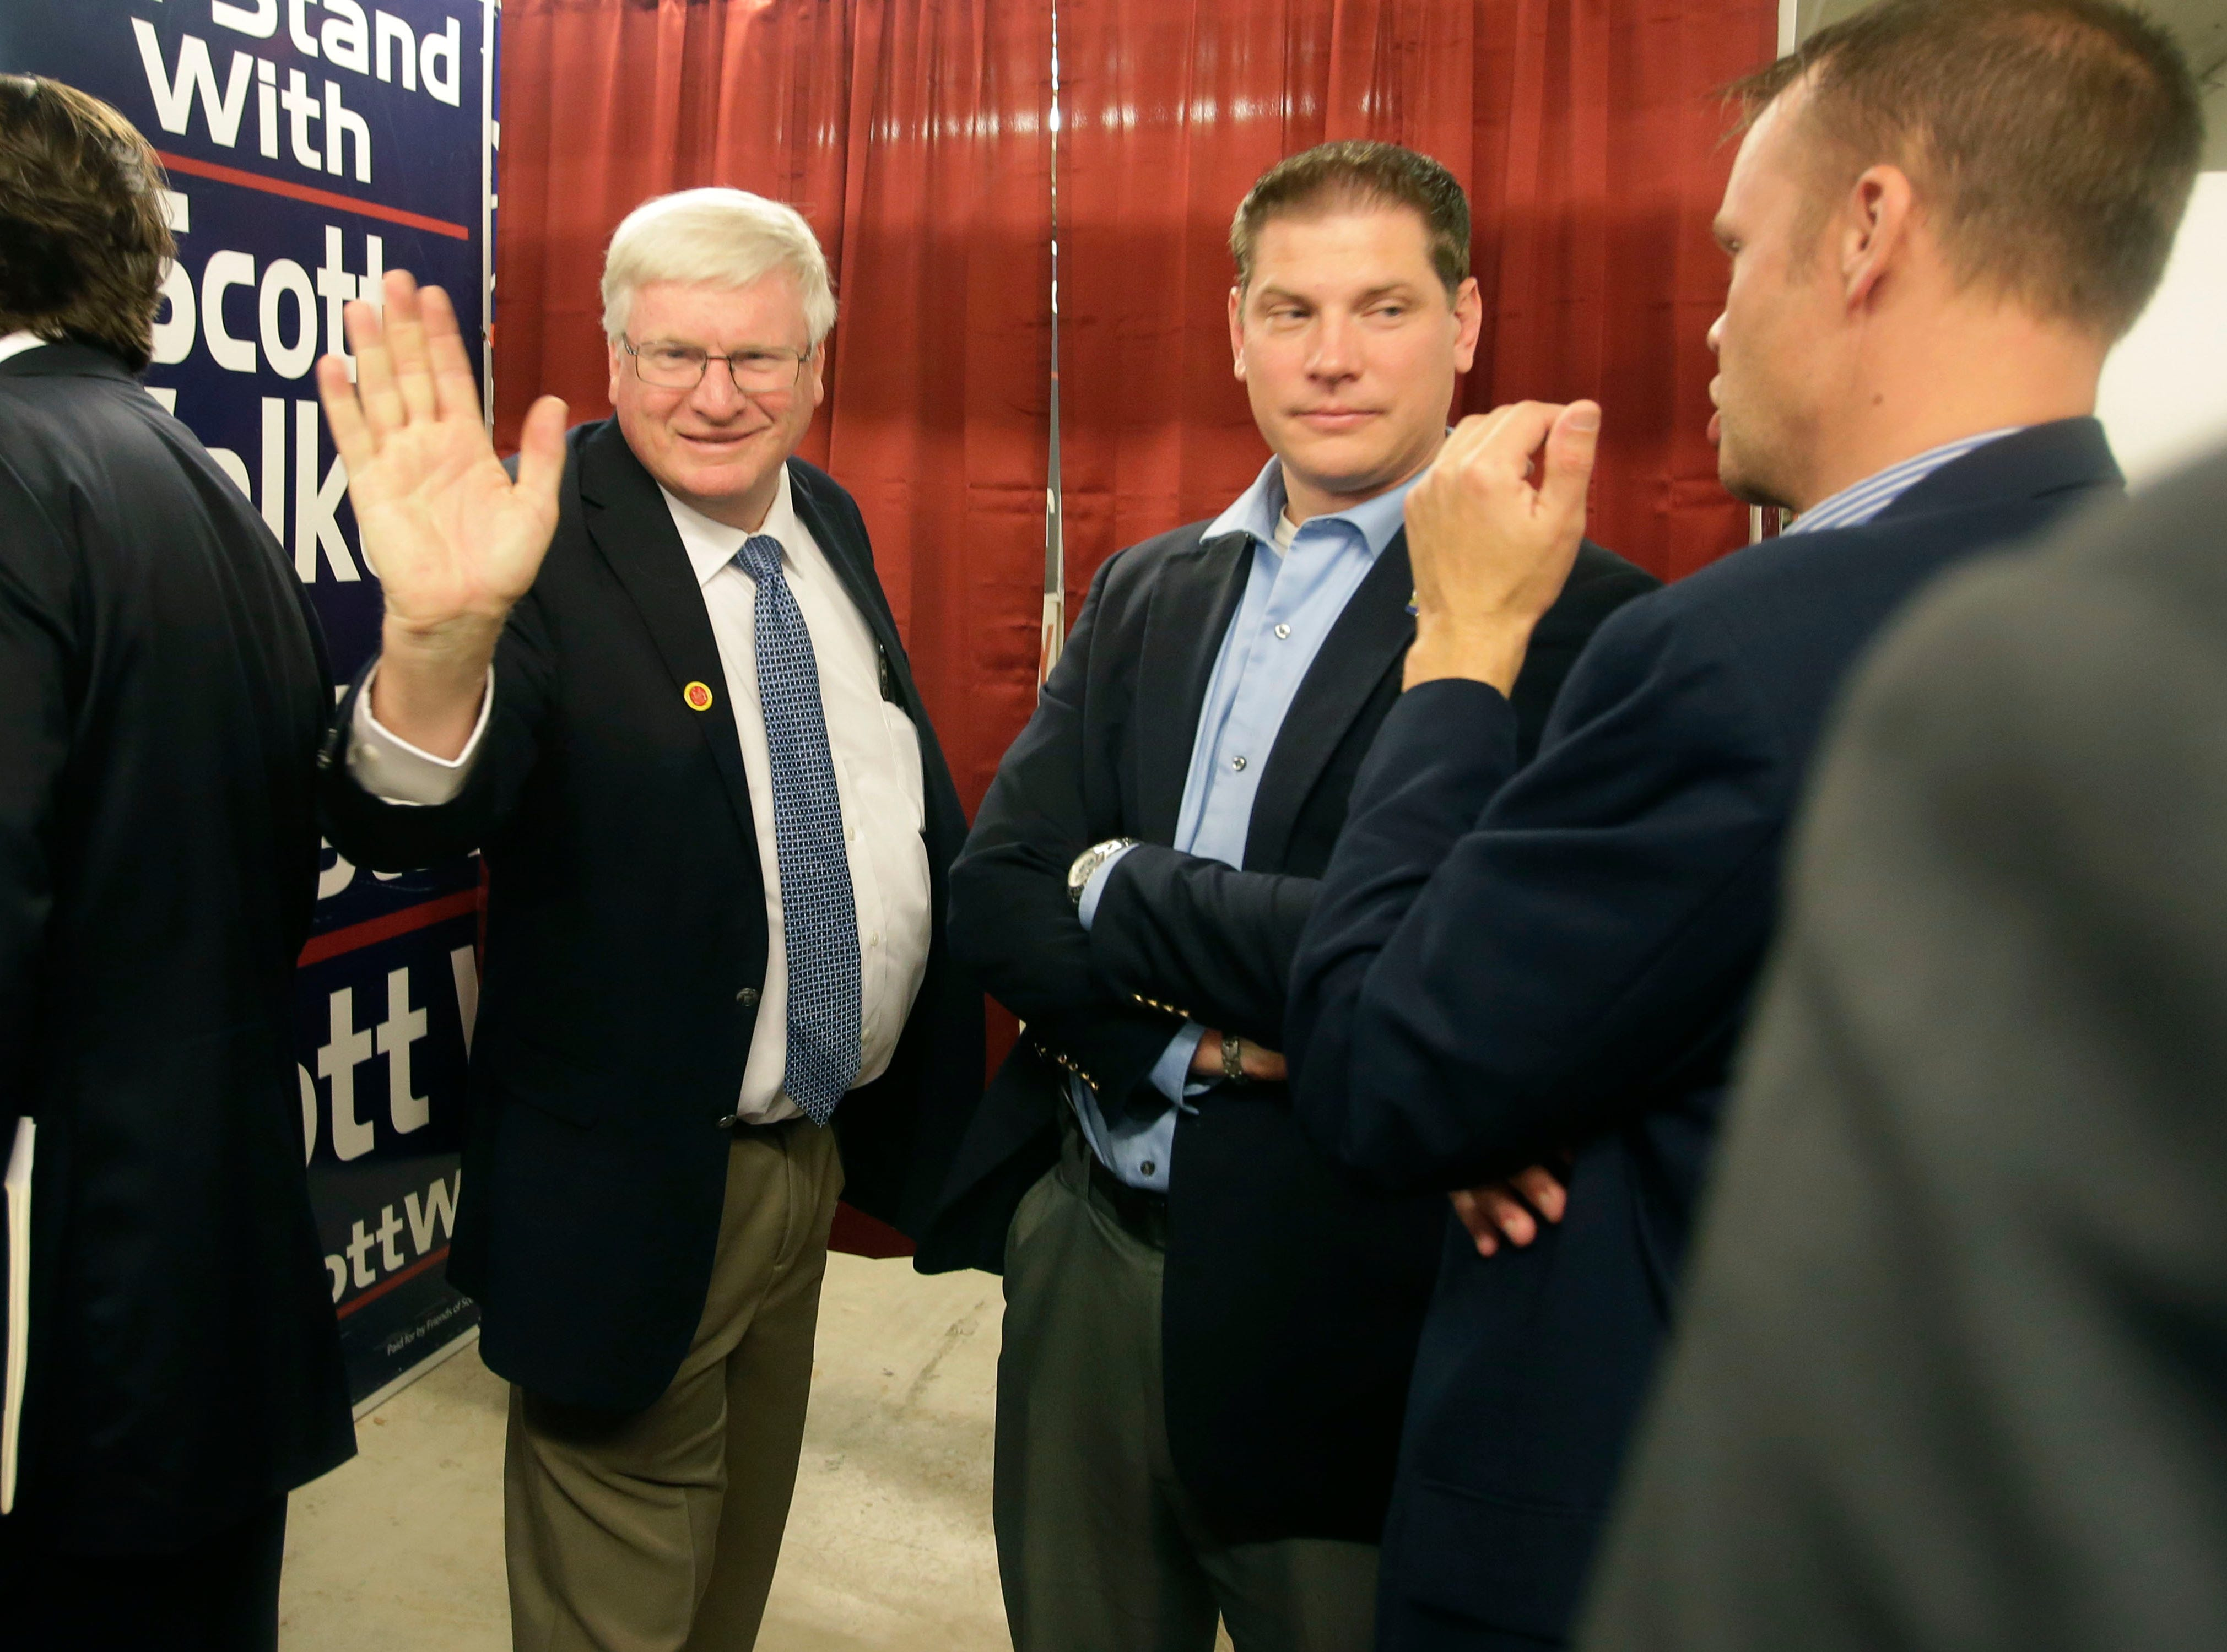 U.S. Representative Glenn Grothman, left, waves, while standing next to State Representative Tyler Vorpagel, middle and State Senator Devin LeMahieu, back to camera, Tuesday, October 30, 2018, in Sheboygan, Wi